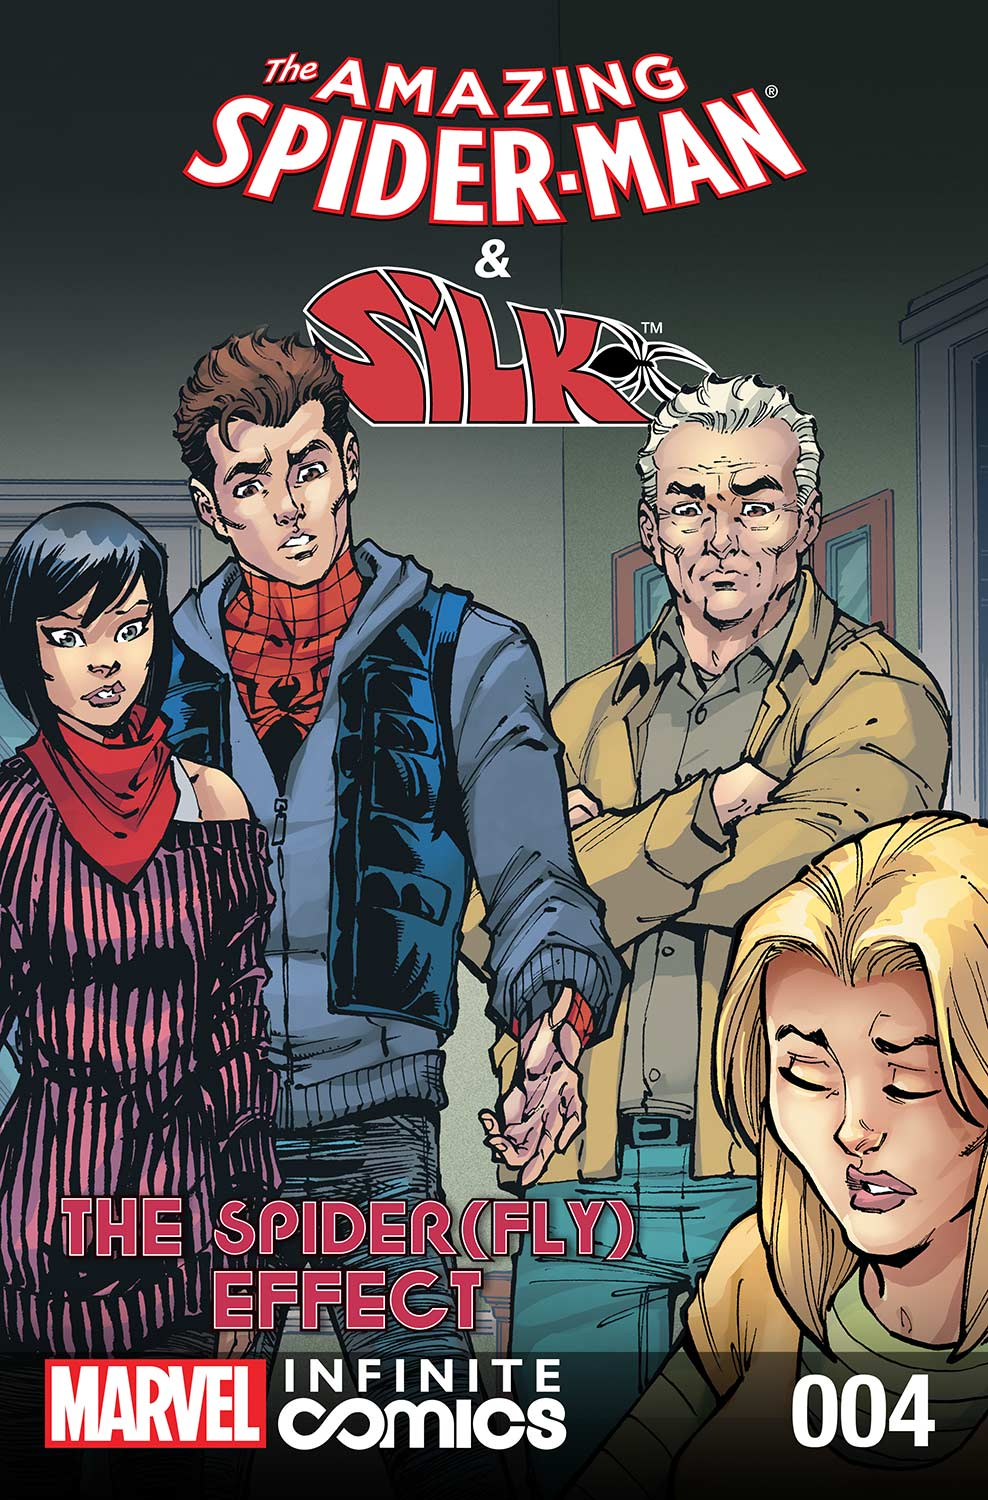 Amazing Spider-Man & Silk: The Spider(fly) Effect Infinite Comic (2016) #4